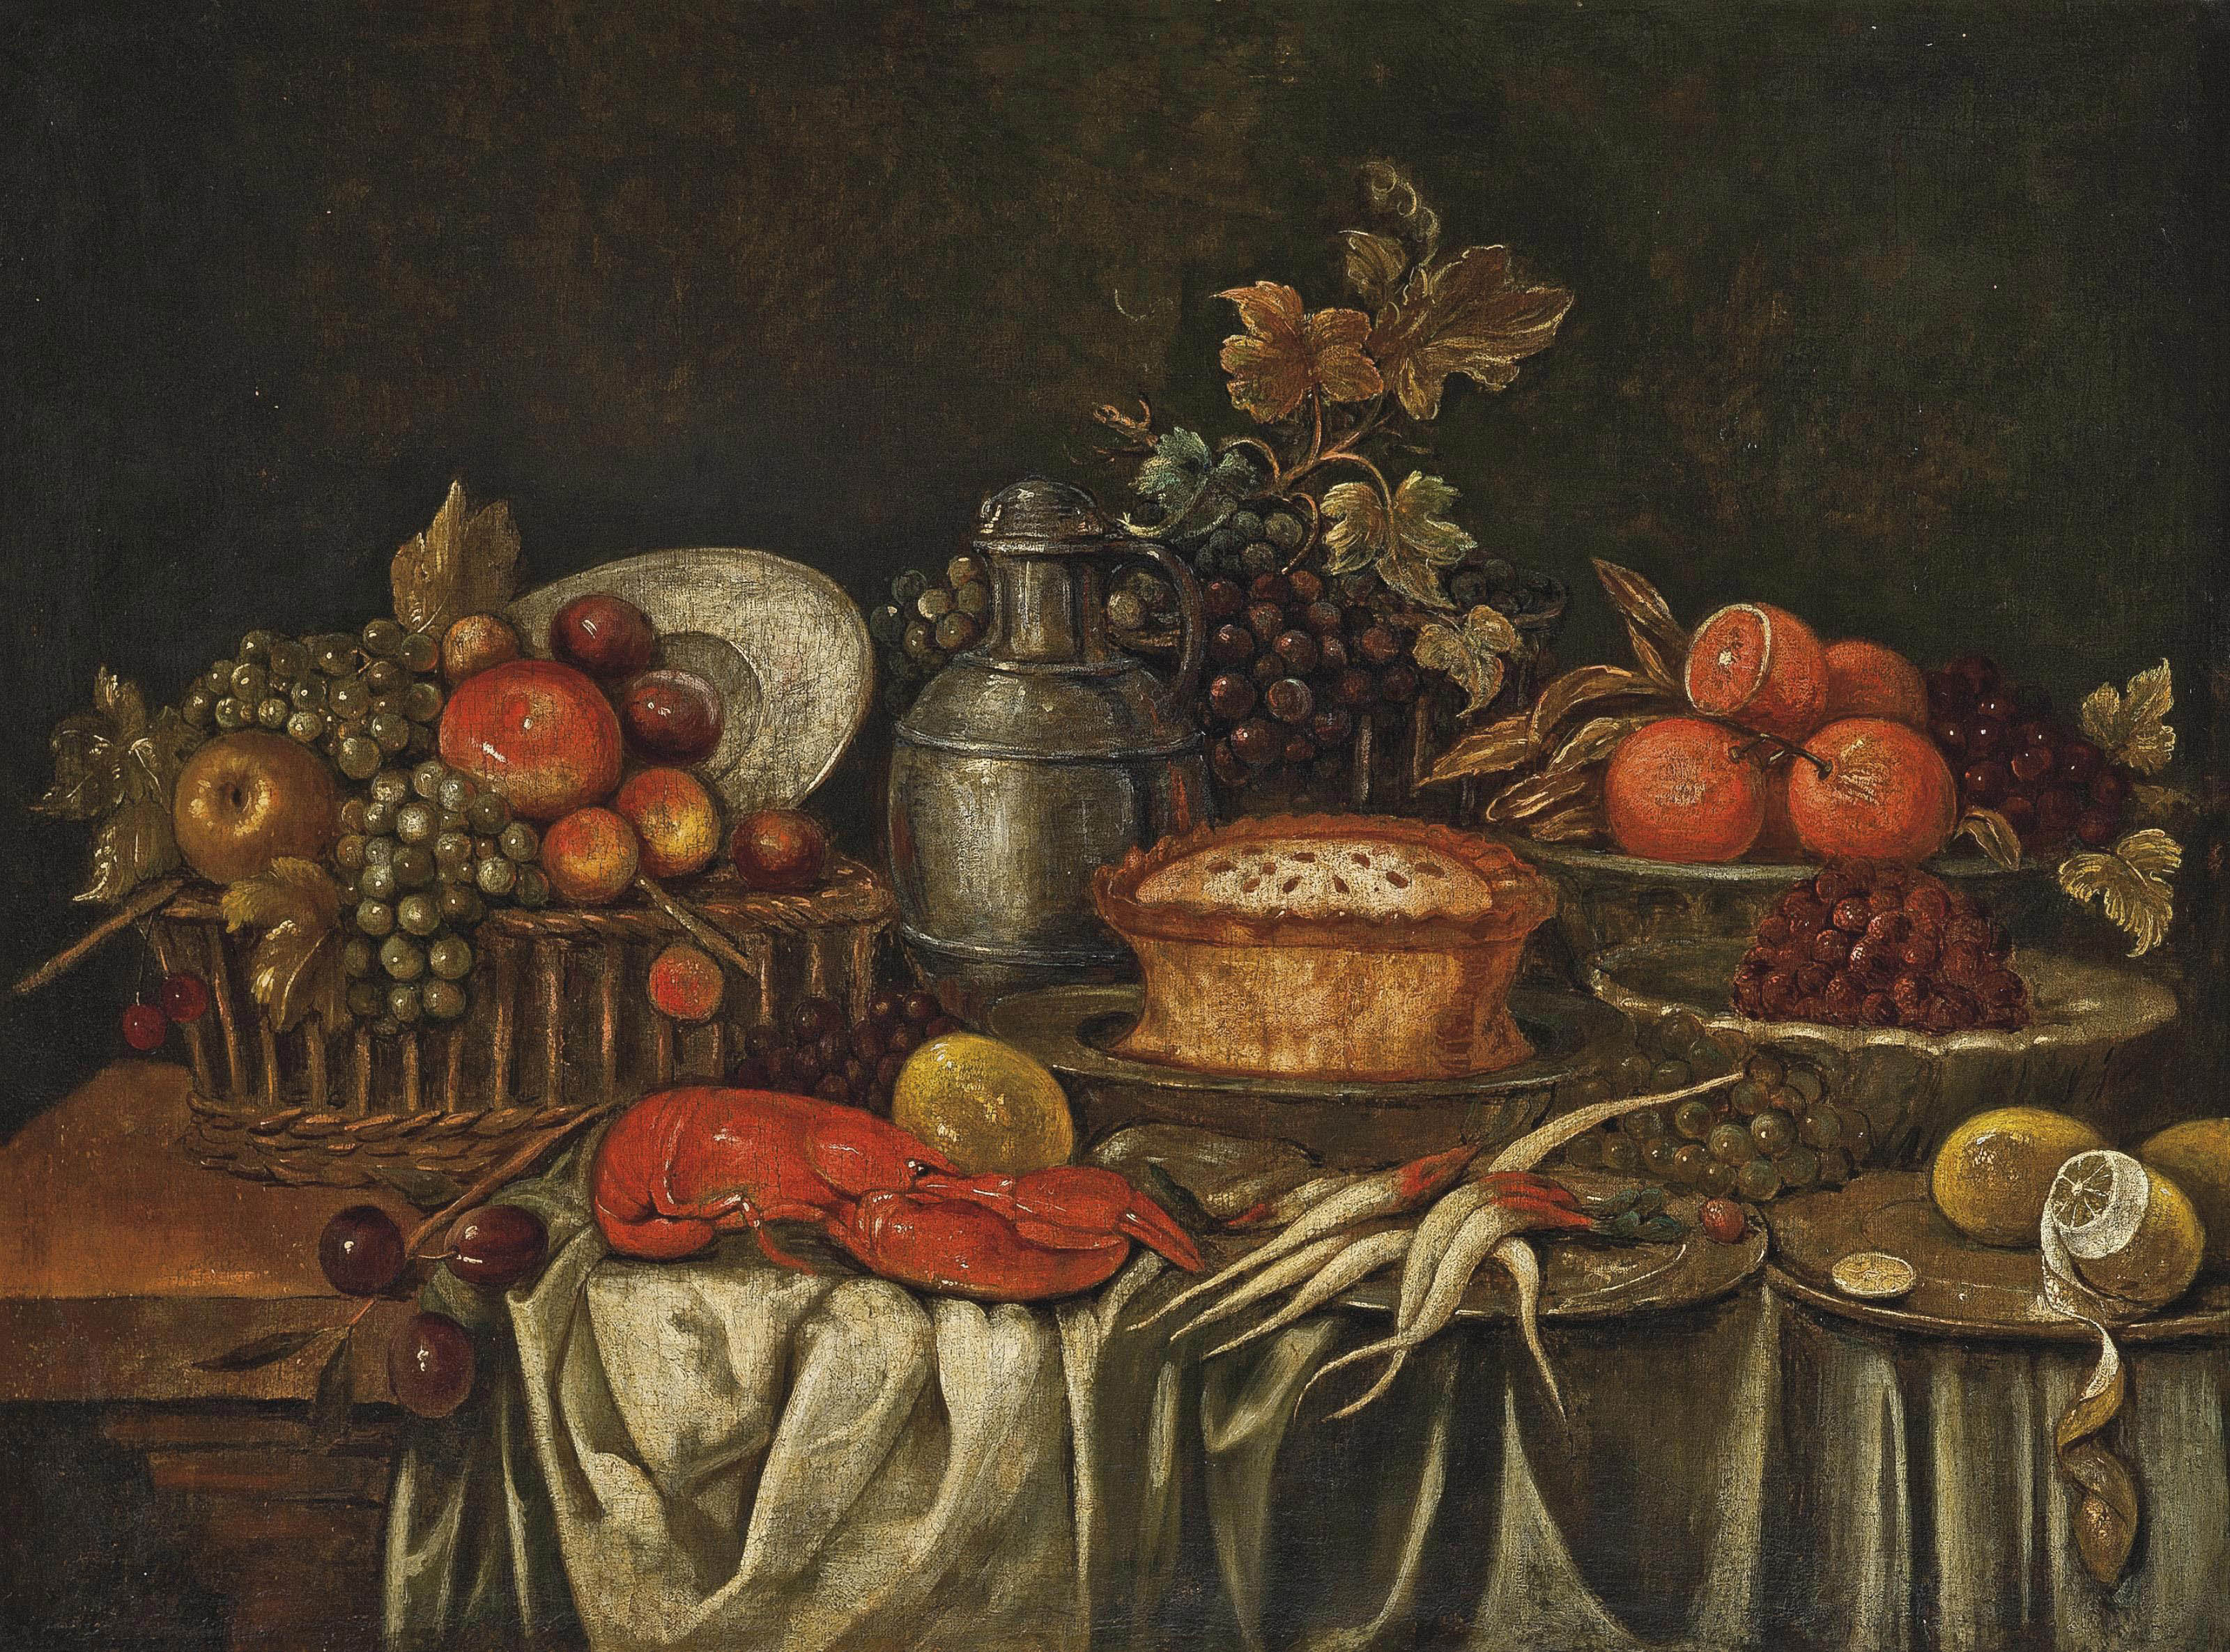 Plums and fruit in a basket, a lobster, lemons, oranges, grapes, a jug and a pie on a partially draped table